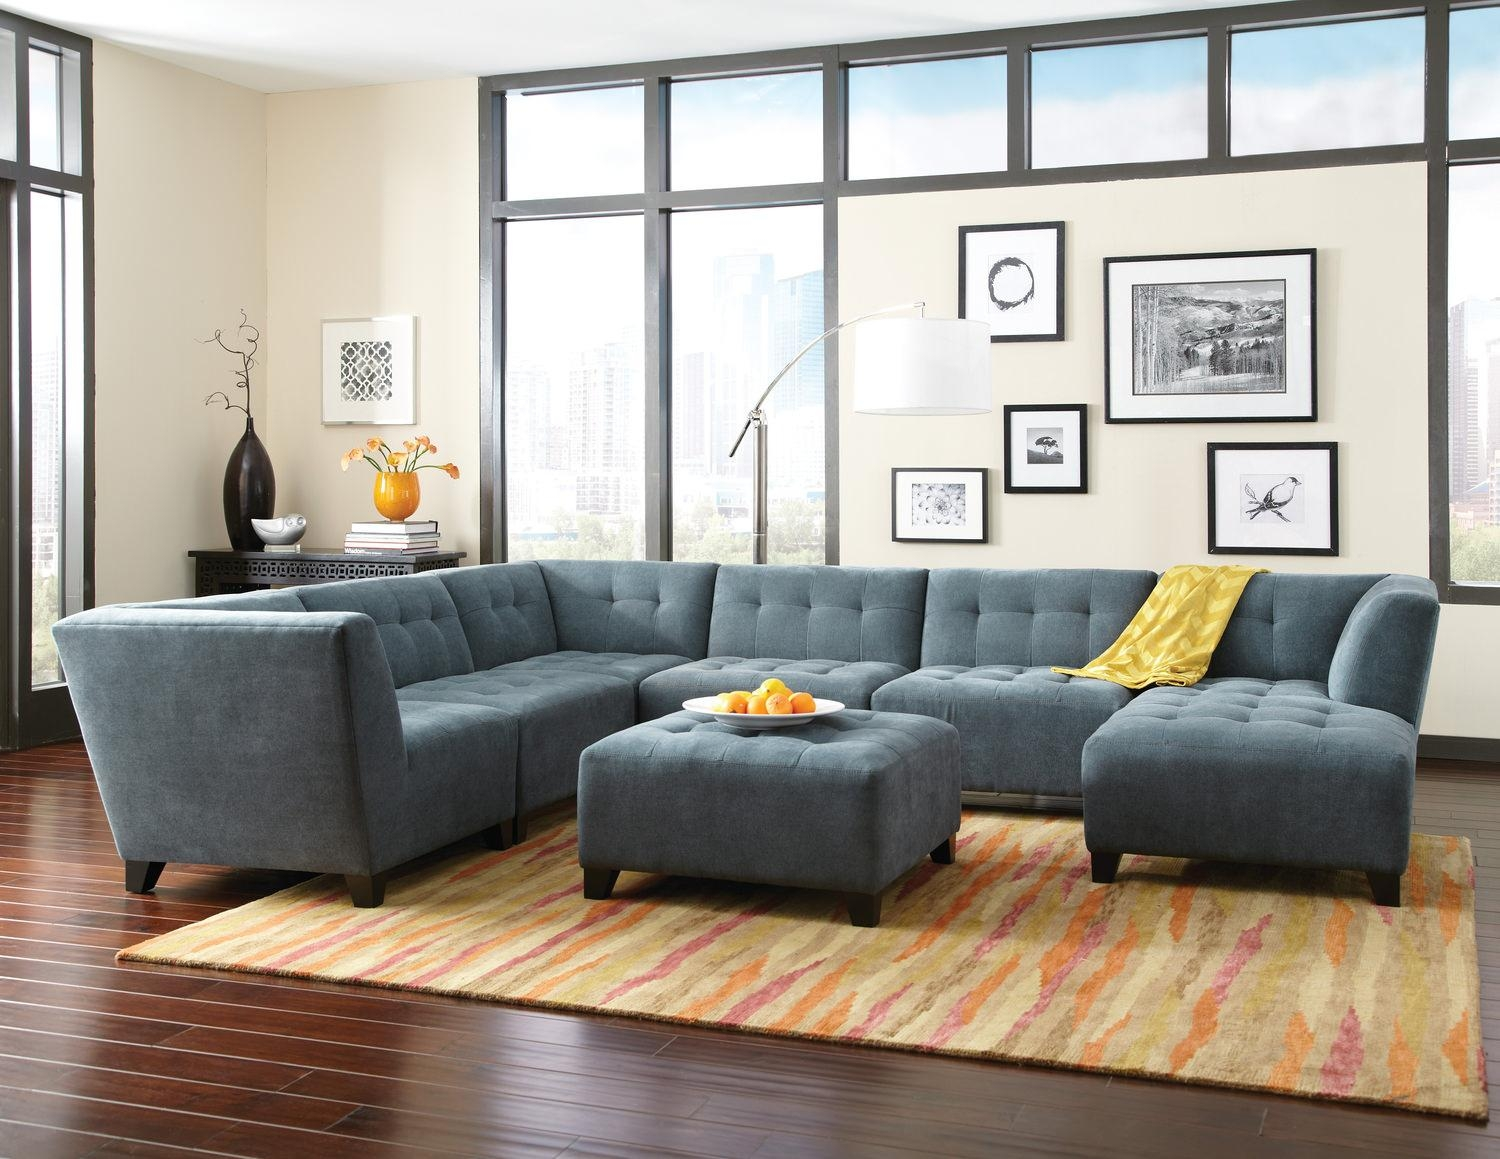 6 Piece Sectional Sofa | Best Sofas Ideas – Sofascouch With 6 Piece Sectional Sofas Couches (Image 3 of 20)